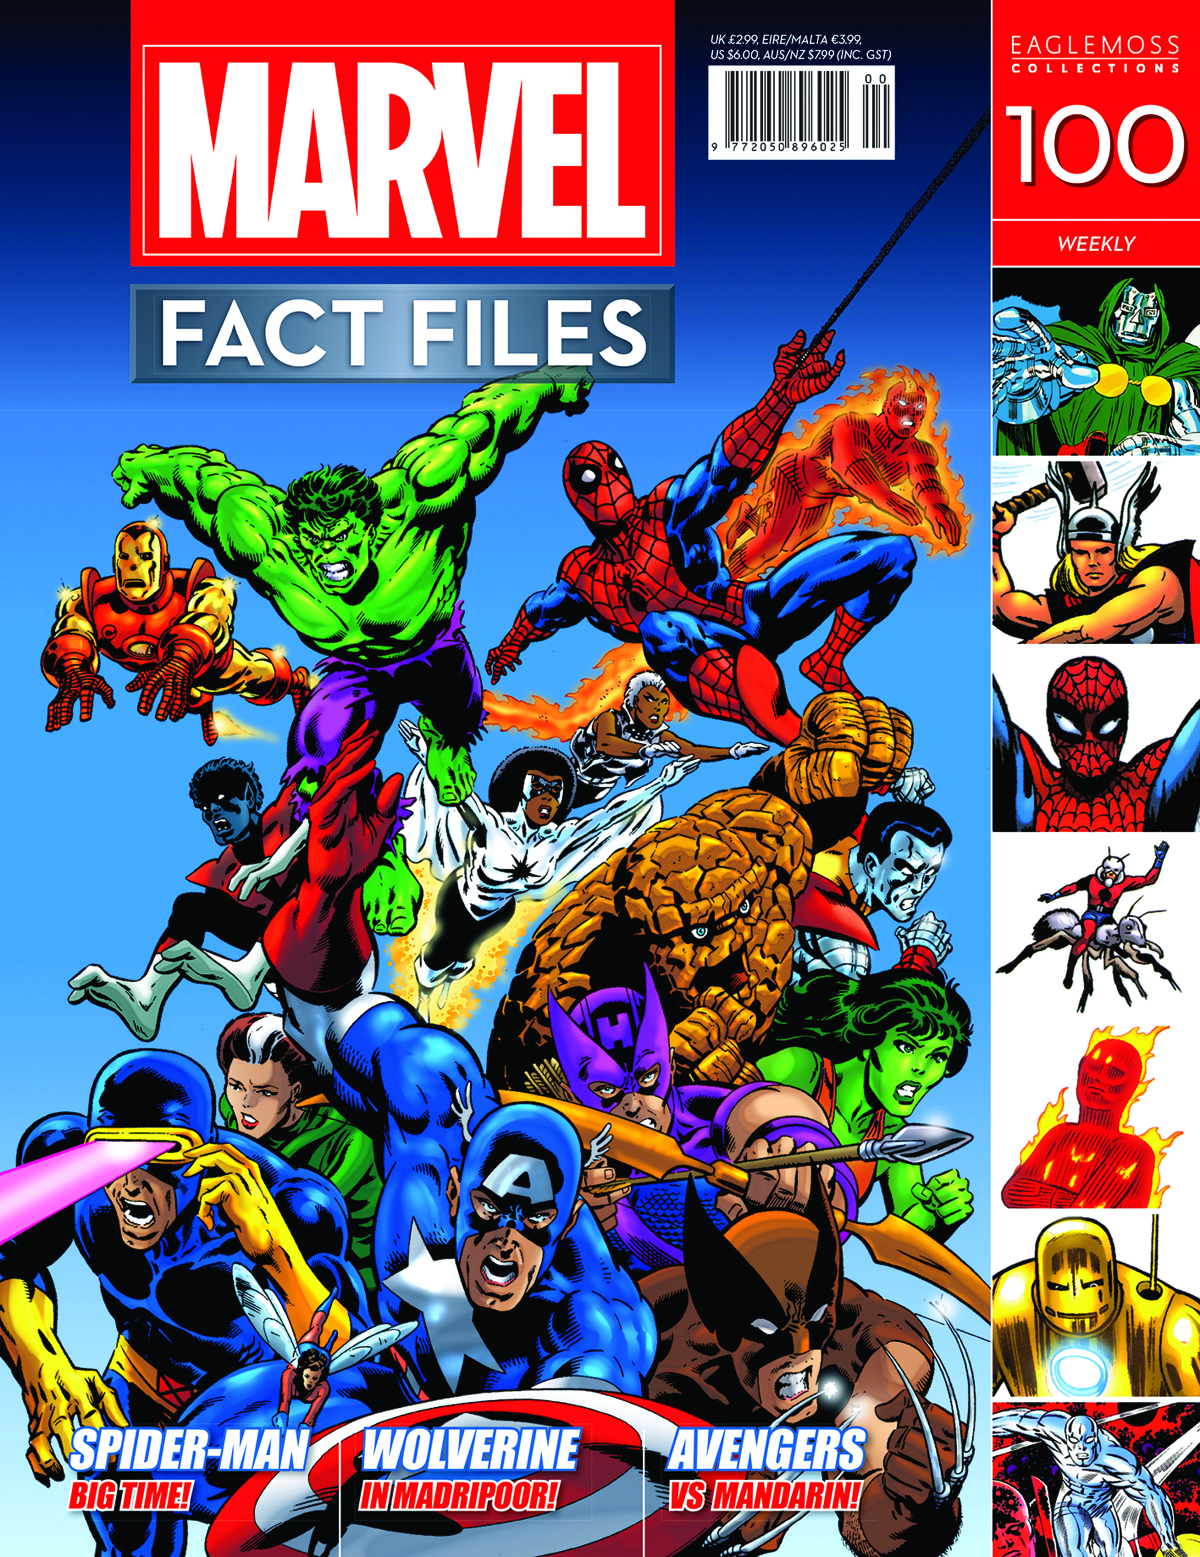 MARVEL FACT FILES #100 SUPERHEROES COVER